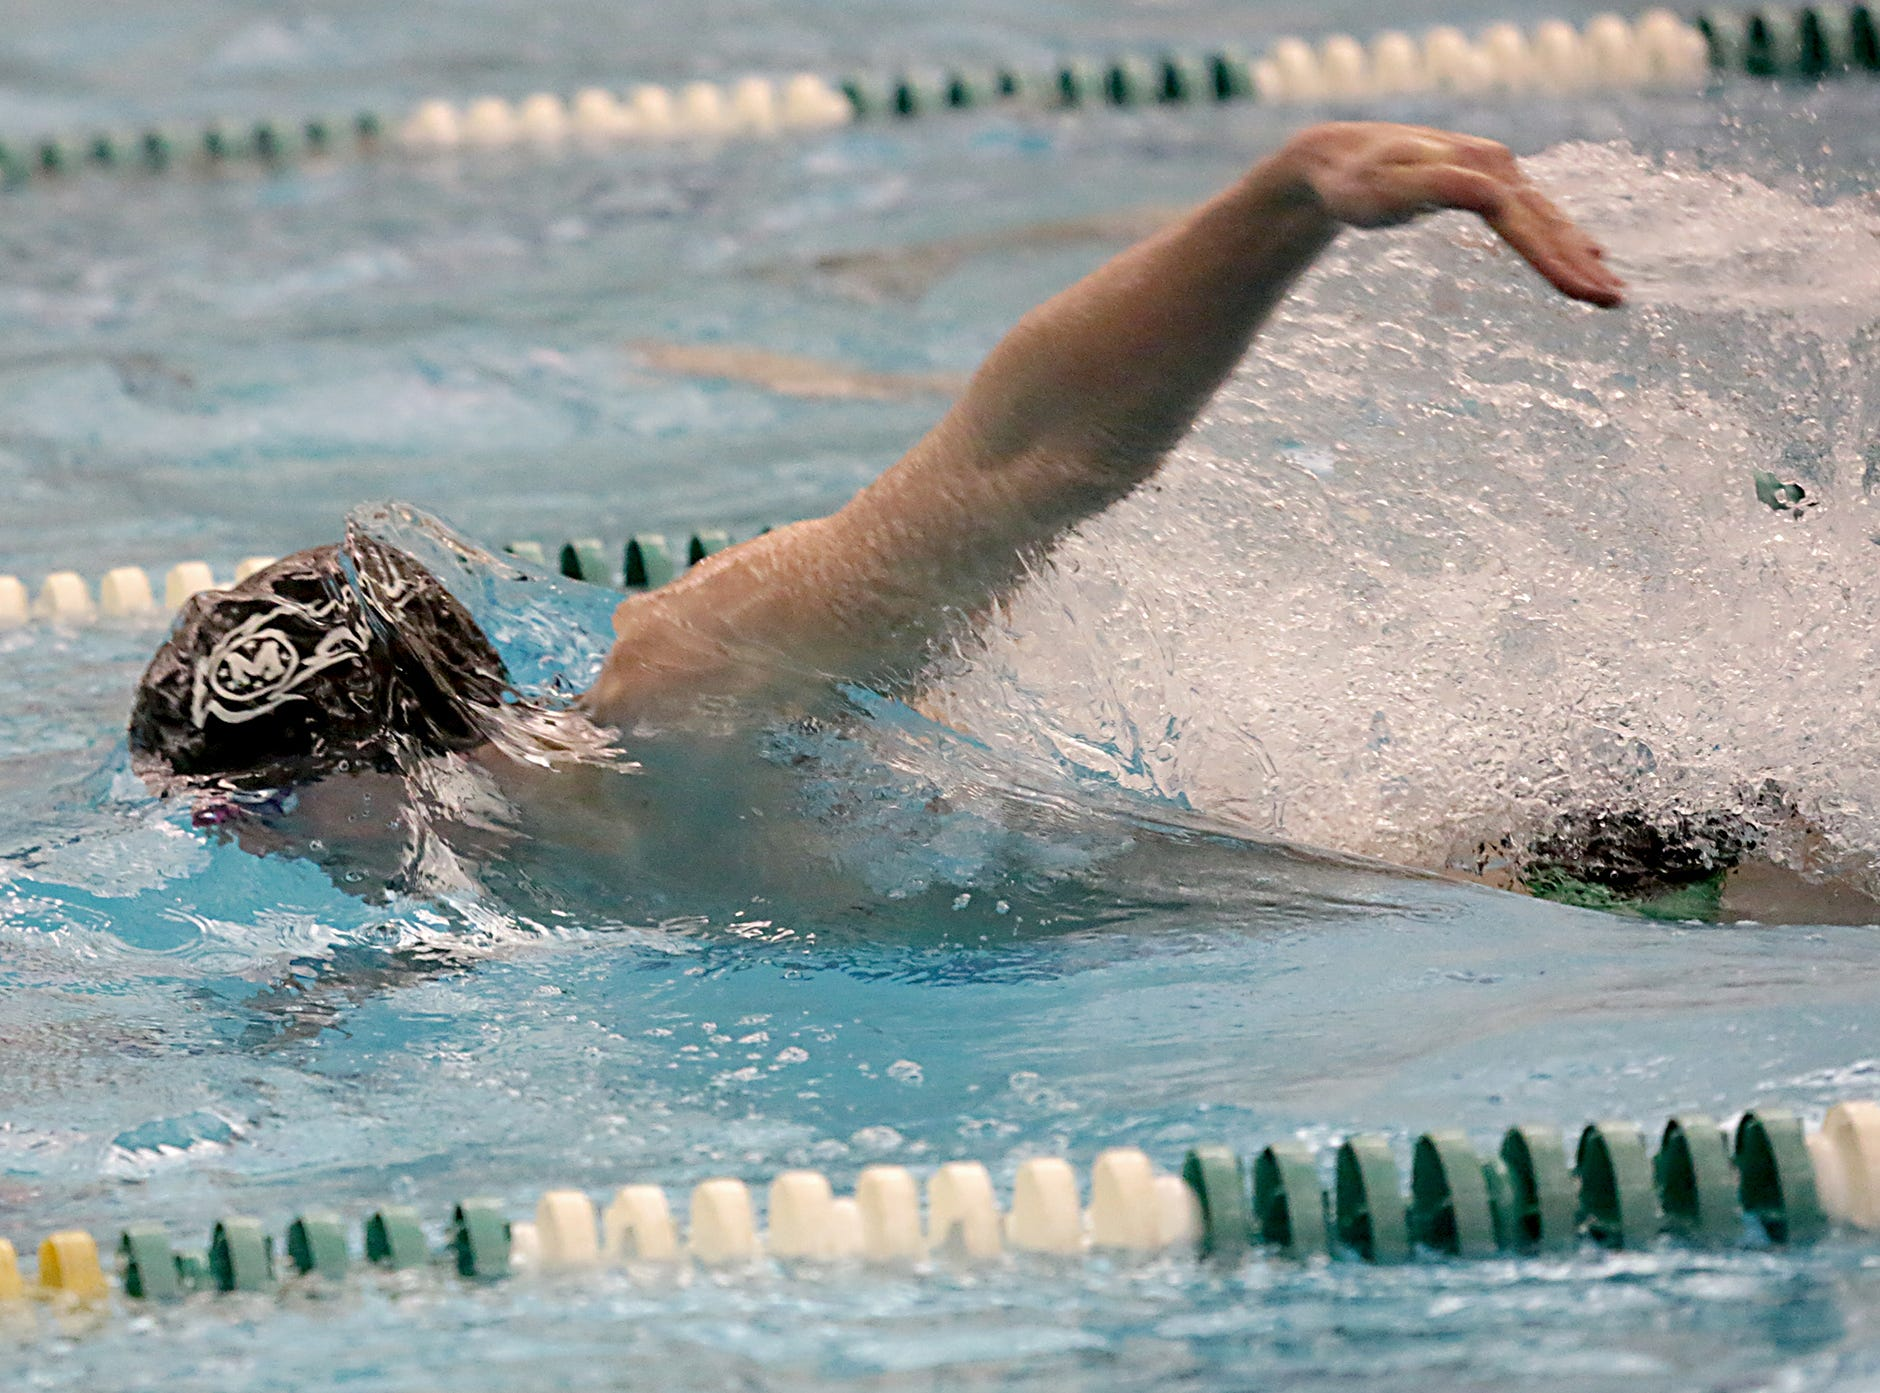 Adam Chaney, from Mason, competes in the 50-yard freestyle during the Division I and Division II sectionals at Mason High School in Mason Friday, Feb. 8, 2019.